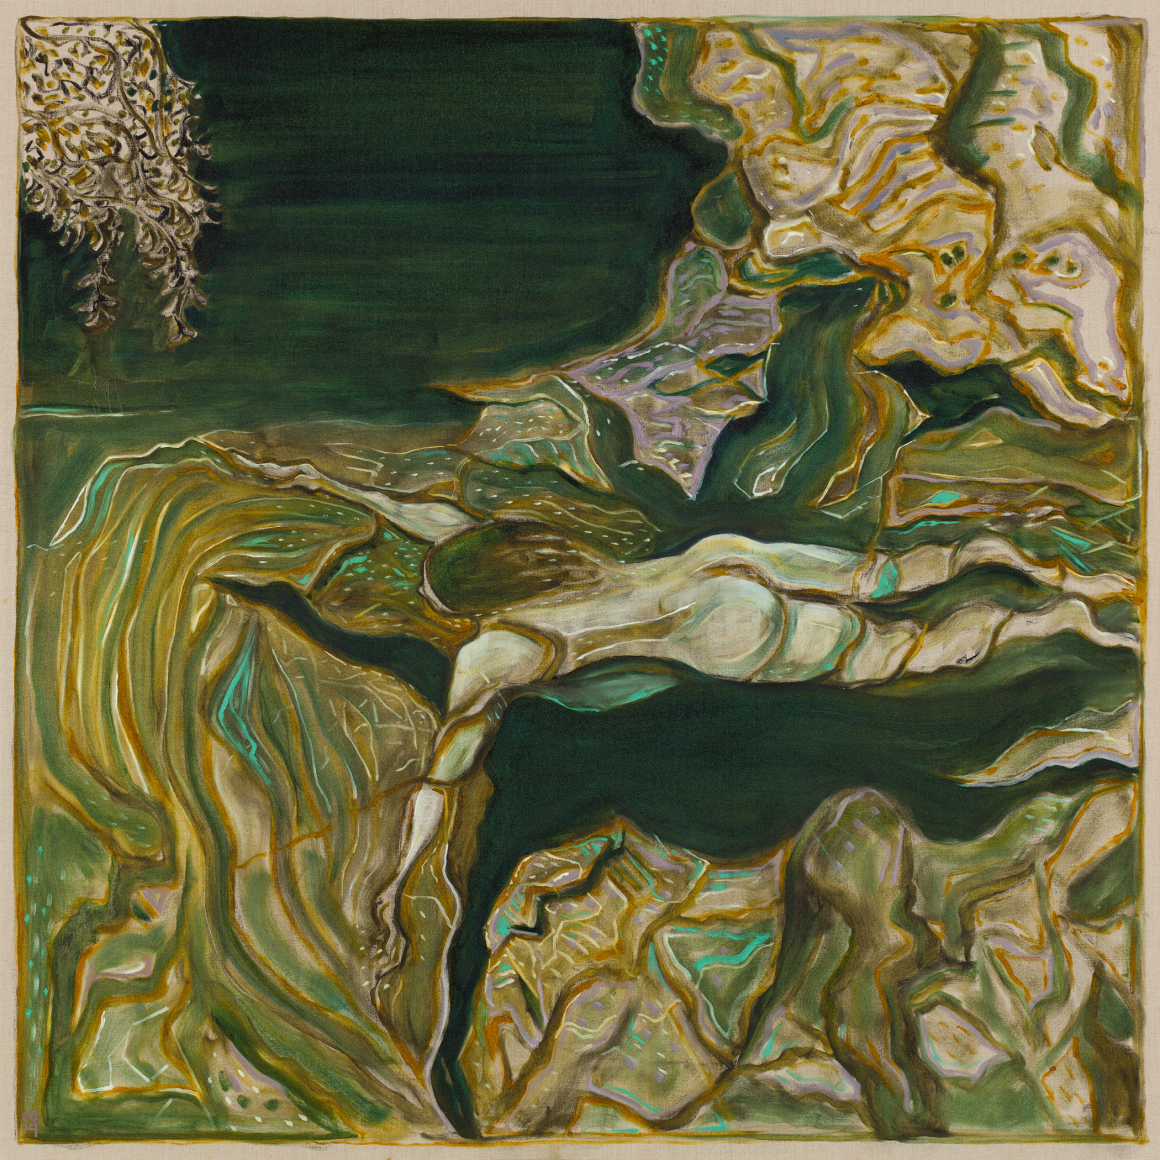 BILLY CHILDISH, yuba river, 2019